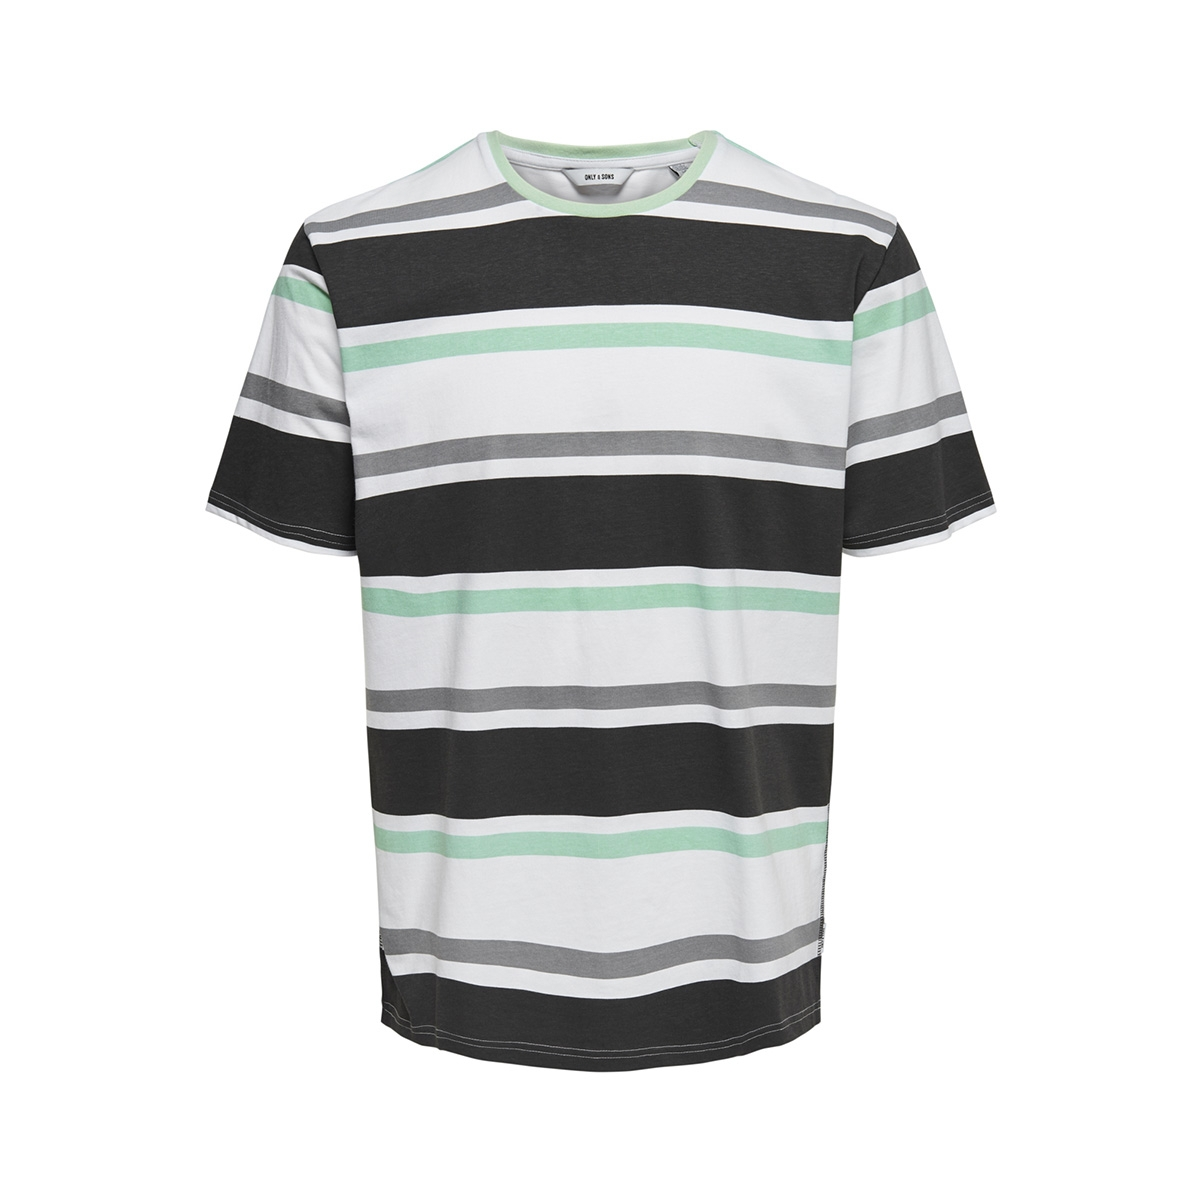 onslex ss reg striped tee 22012625 only & sons t-shirt white/navy/grey/green